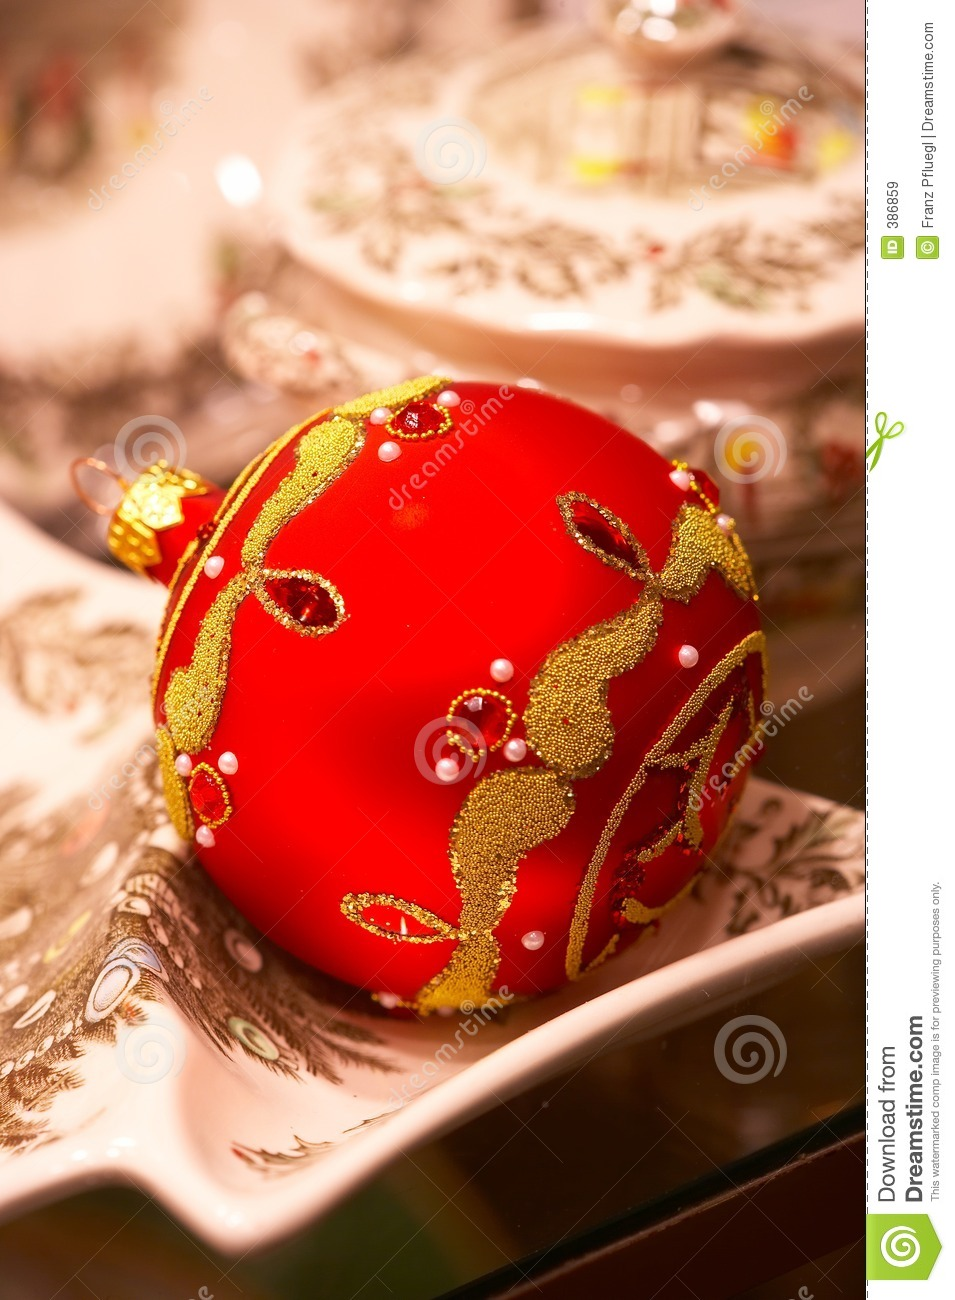 Red Christmas Ball With Ornaments Christbaumschmuck Stock Image